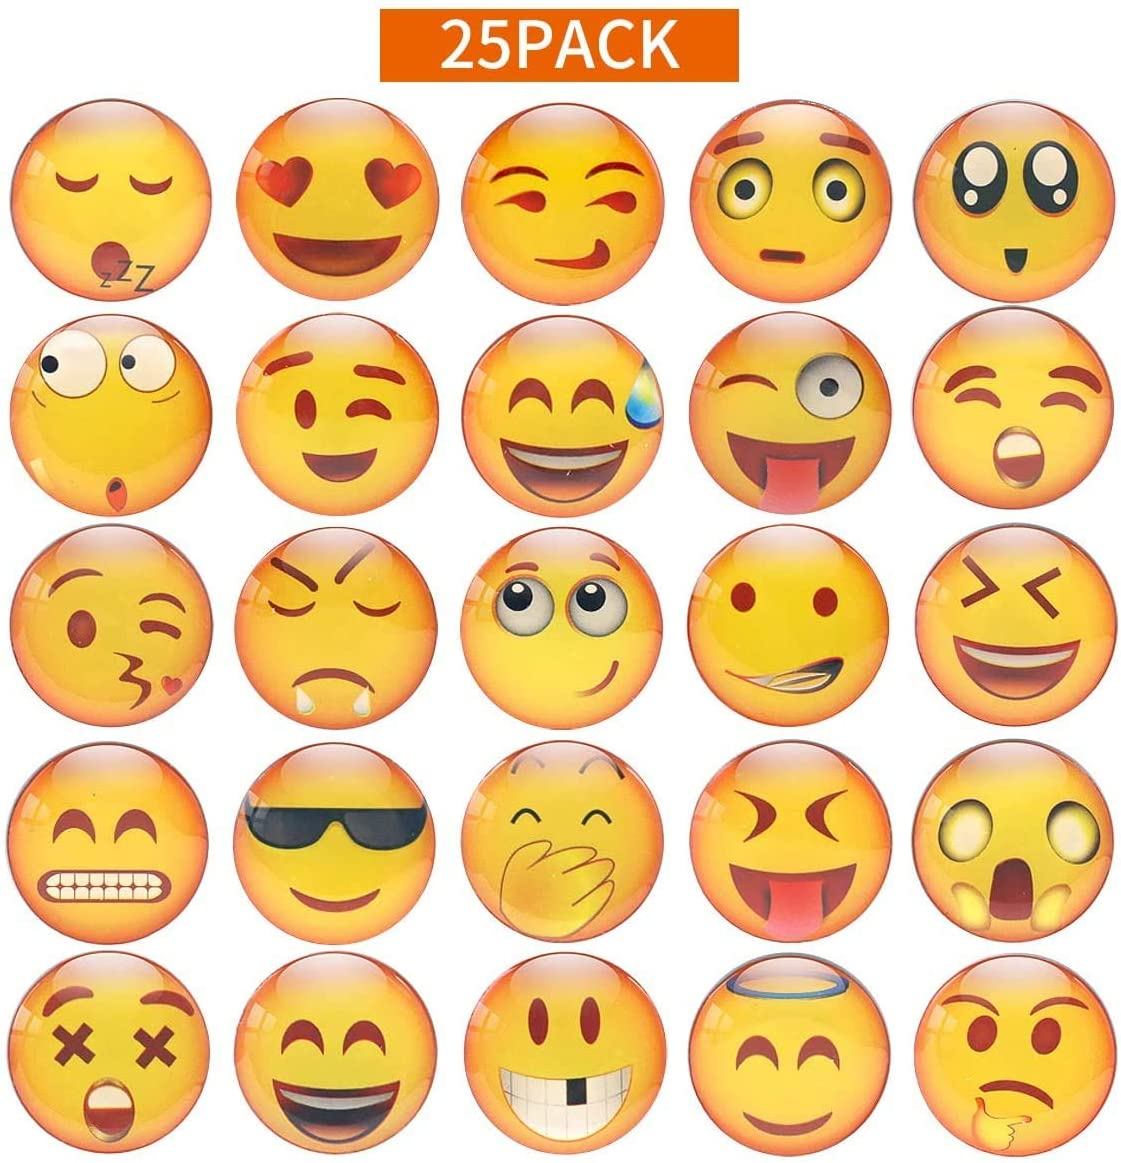 Emoji Magnets for Fridge Refrigerator Decorative 3D Lockers Whiteboards Office Kitchen Cute Funny Gifts for Kids Toddlers and Adults 25Pcs